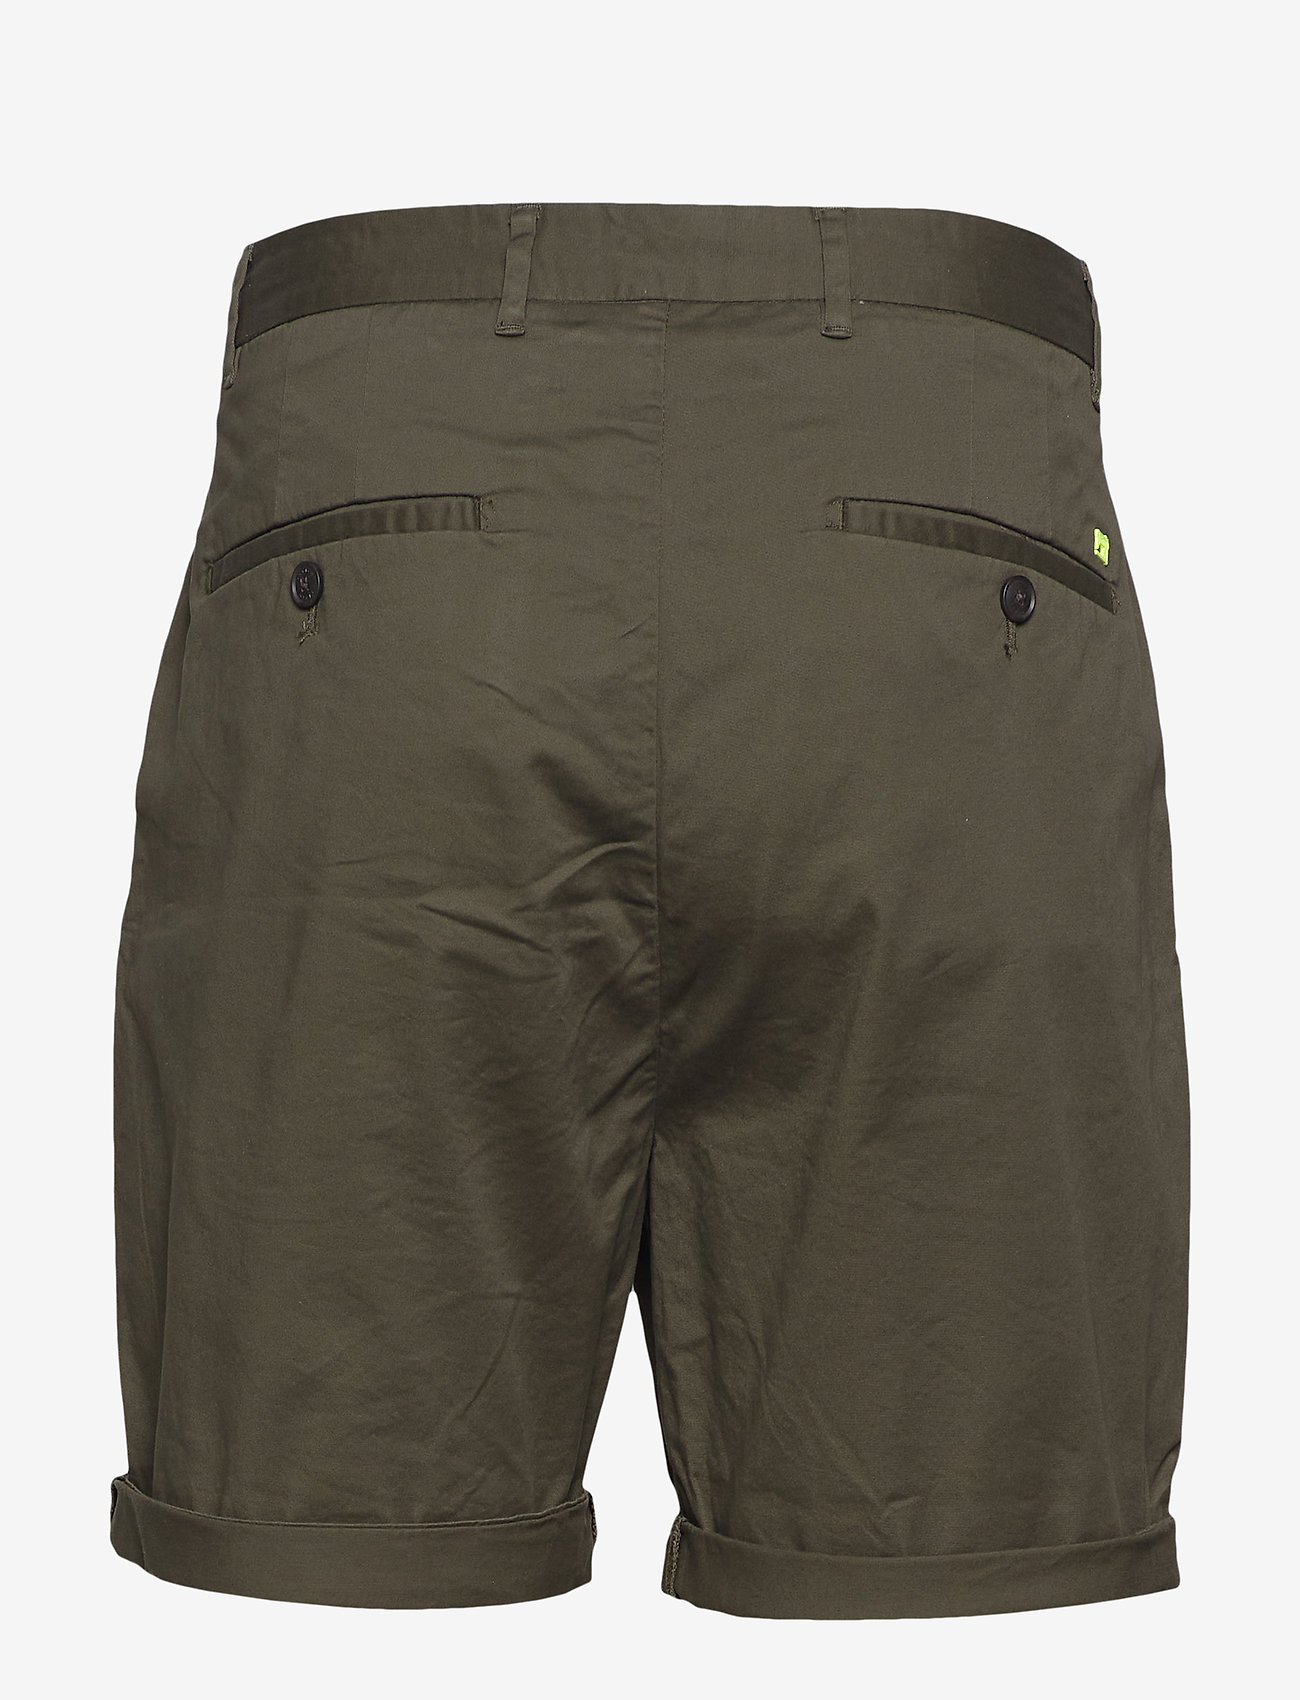 Scotch & Soda - Mid length - Classic chino short in pima cotton quality - chinos shorts - military - 1